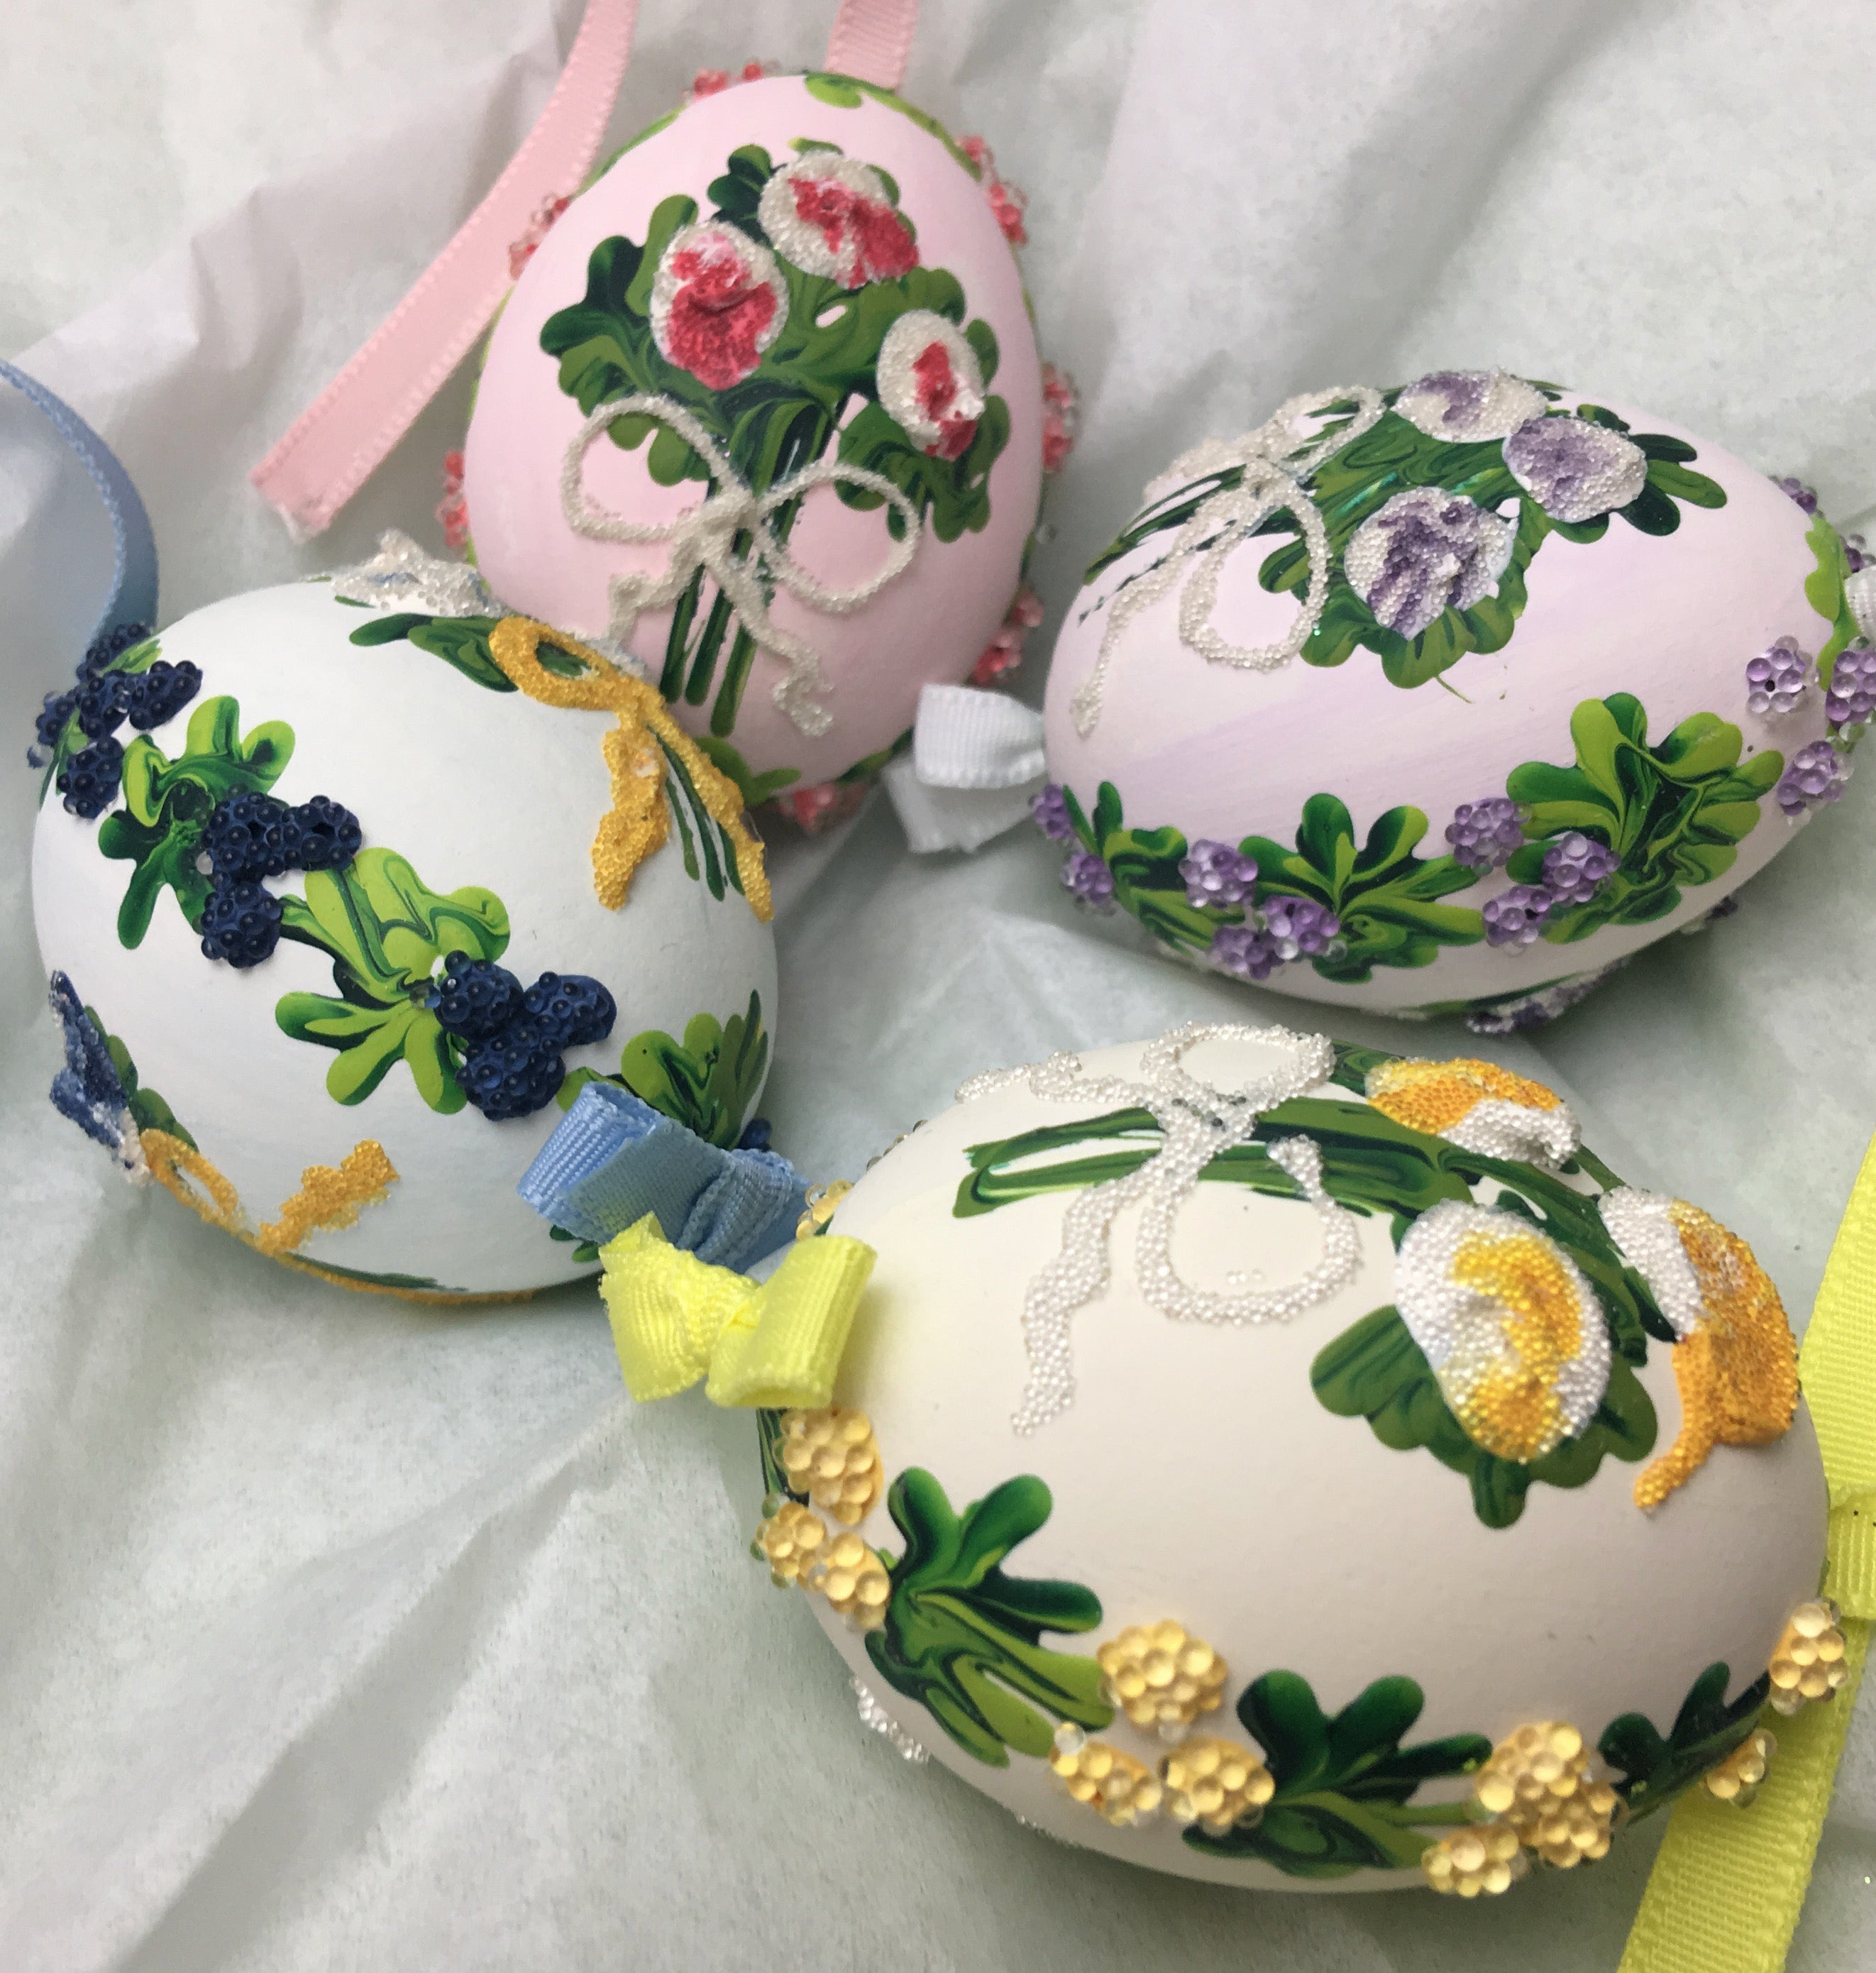 Real Egg Ornaments Decorated with Flowers